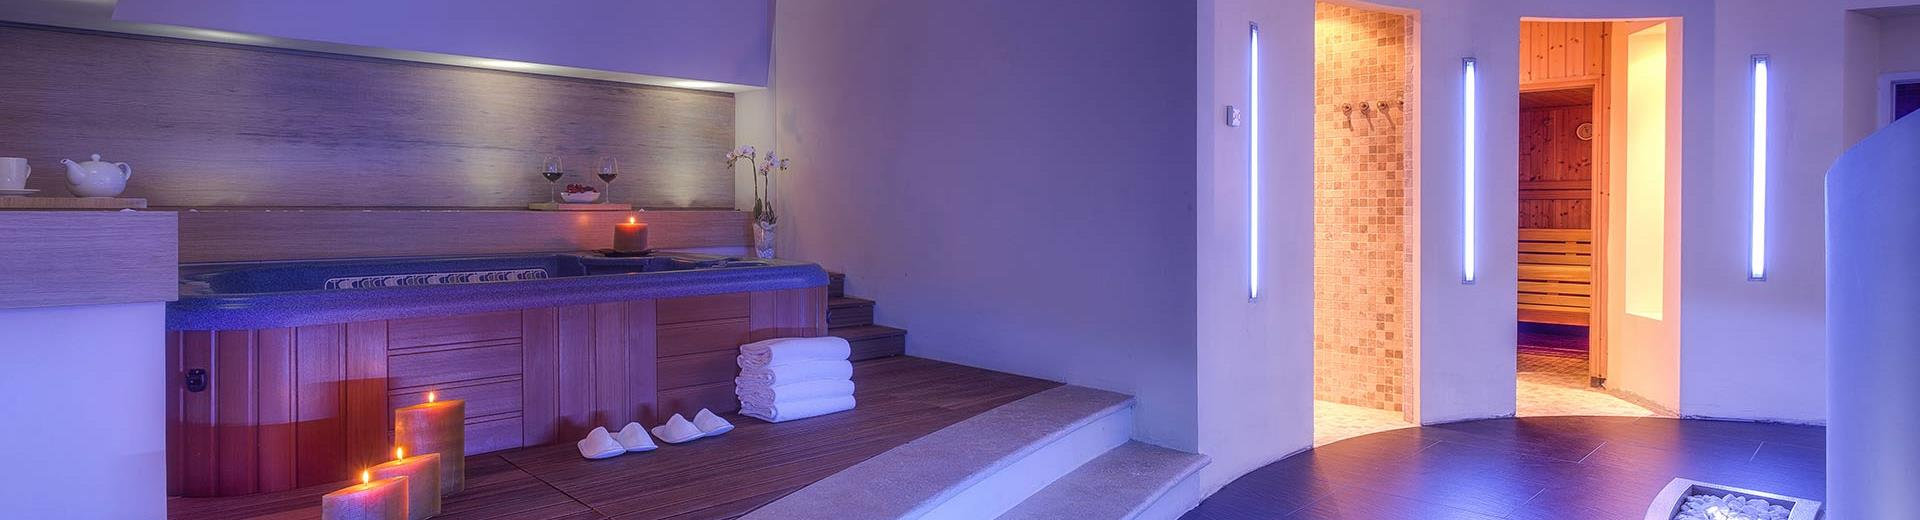 Discover the services in the Wellness center of the Best Western Hotel San Marco and be pampered!